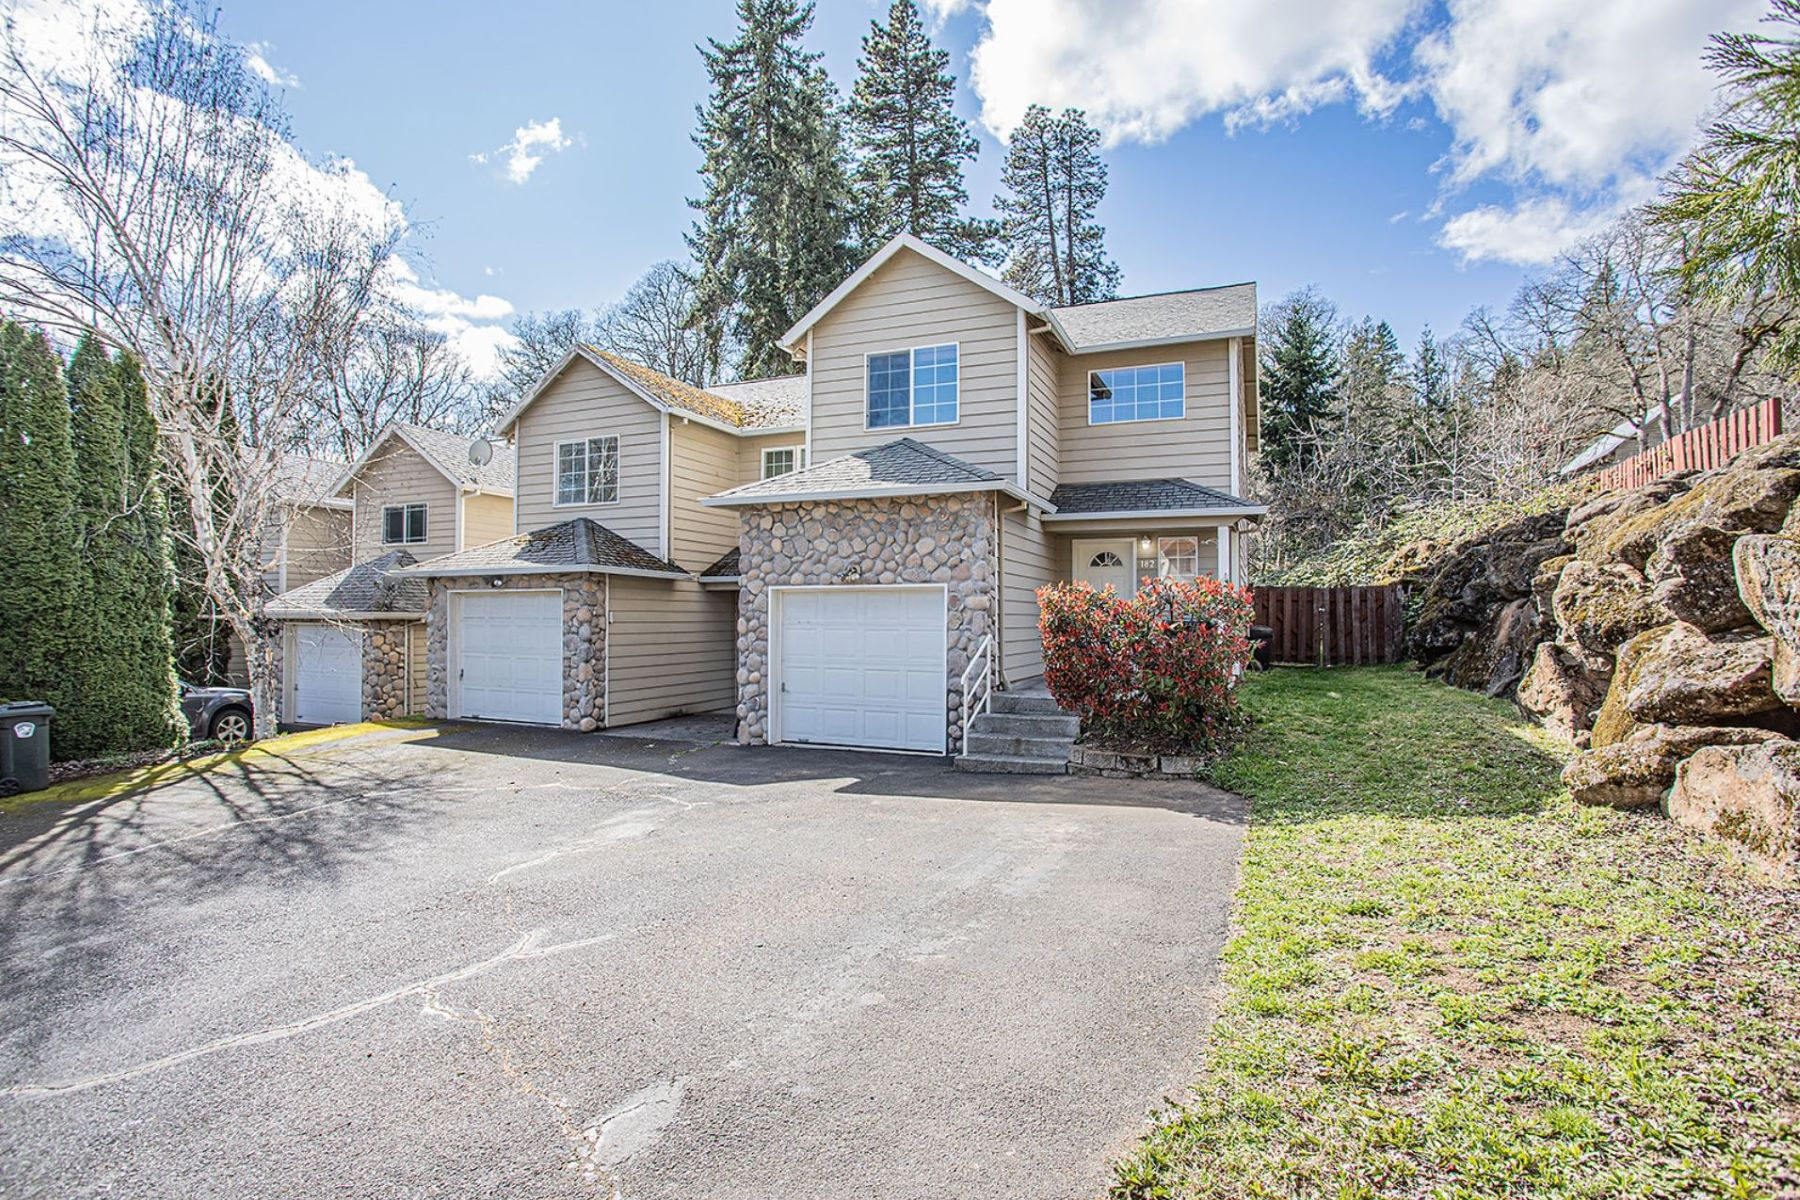 Single Family Homes for Sale at 182 RIVERWATCH DR White Salmon, WA 98672 182 RIVERWATCH DR White Salmon, Washington 98672 United States